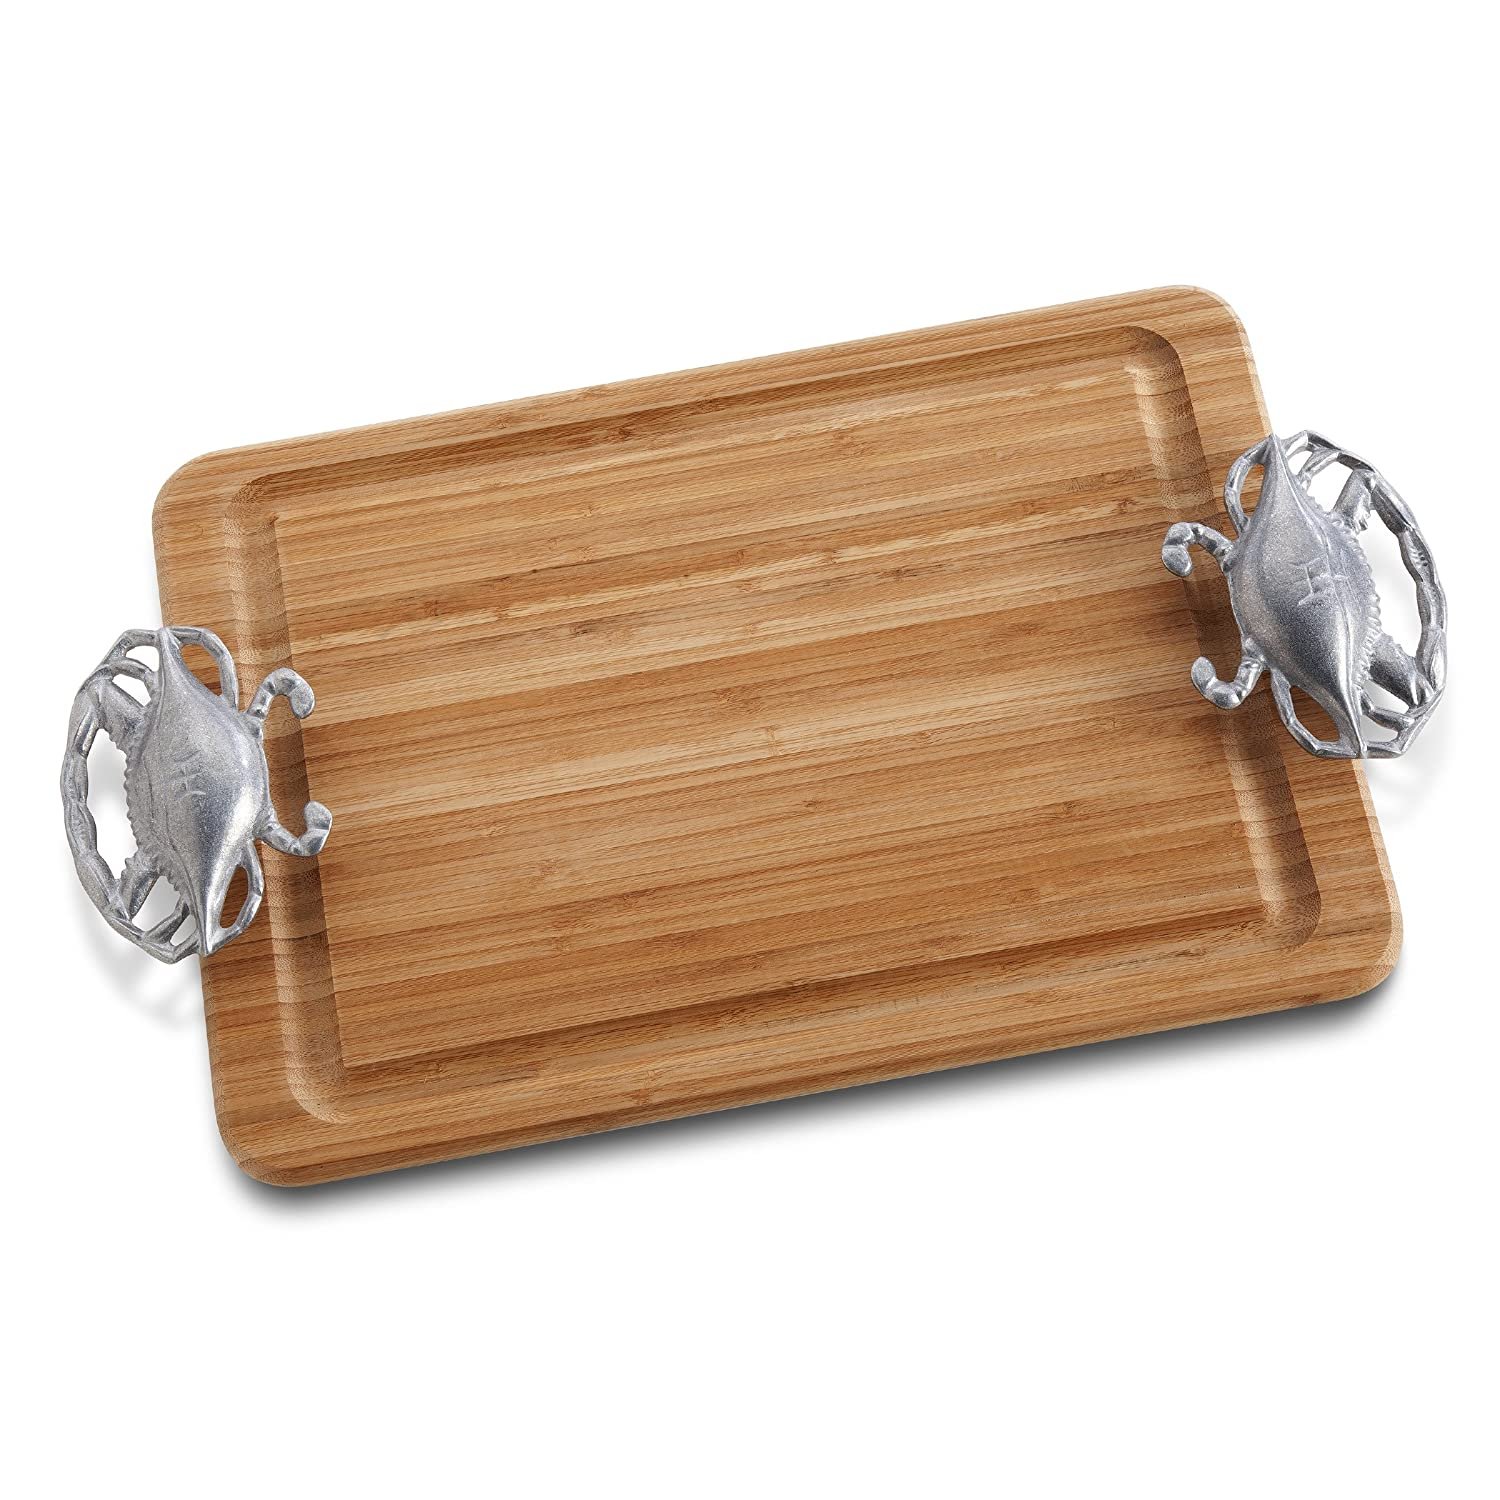 Wilton Armetale Large Carving Board with Crab Handles